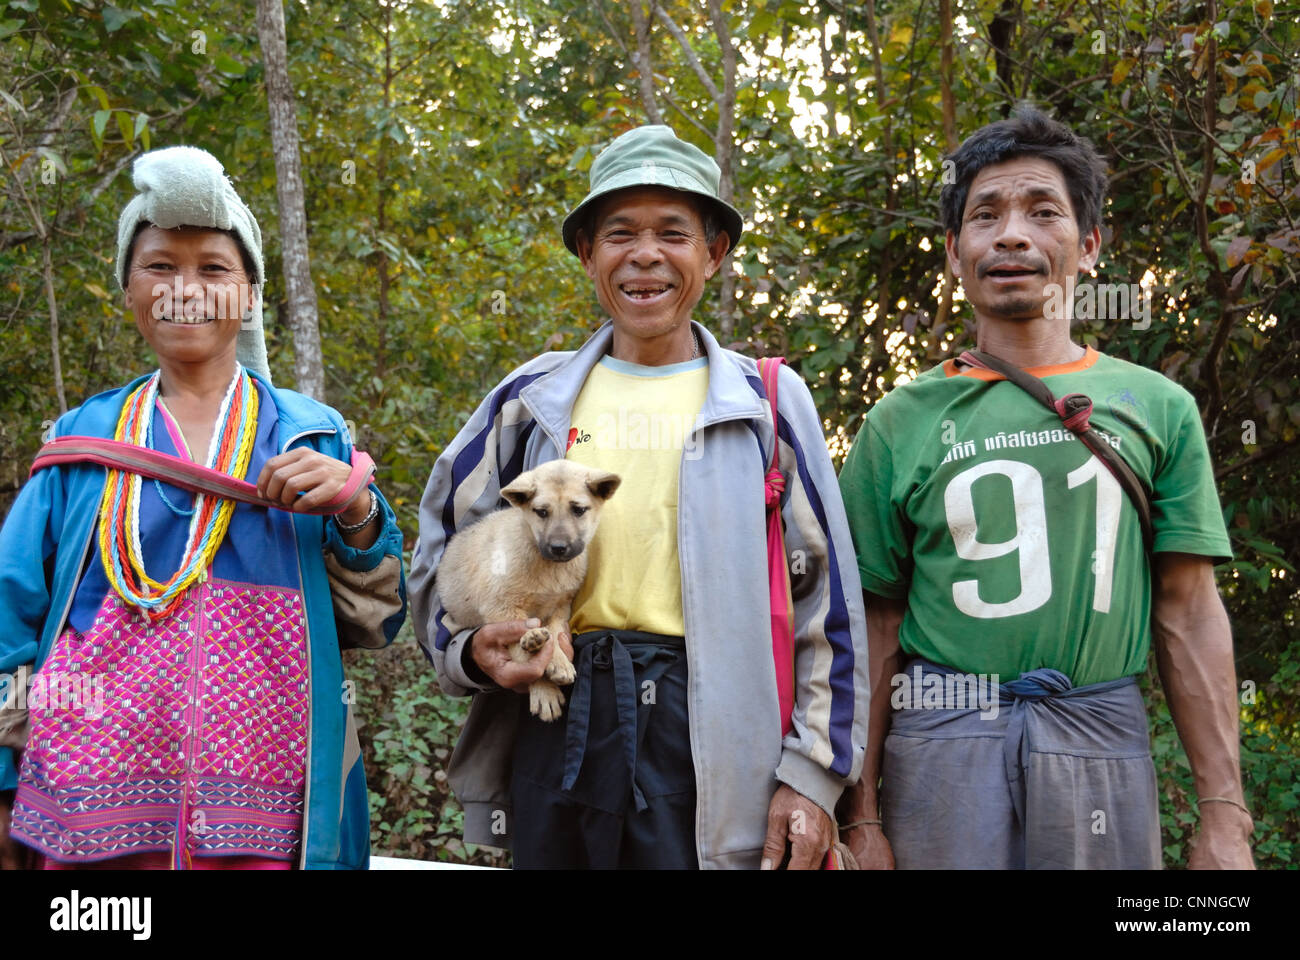 Karen hilltribe family on the way into Mae sariang on 14/02/2009 in Mae sariang Thailand - Stock Image